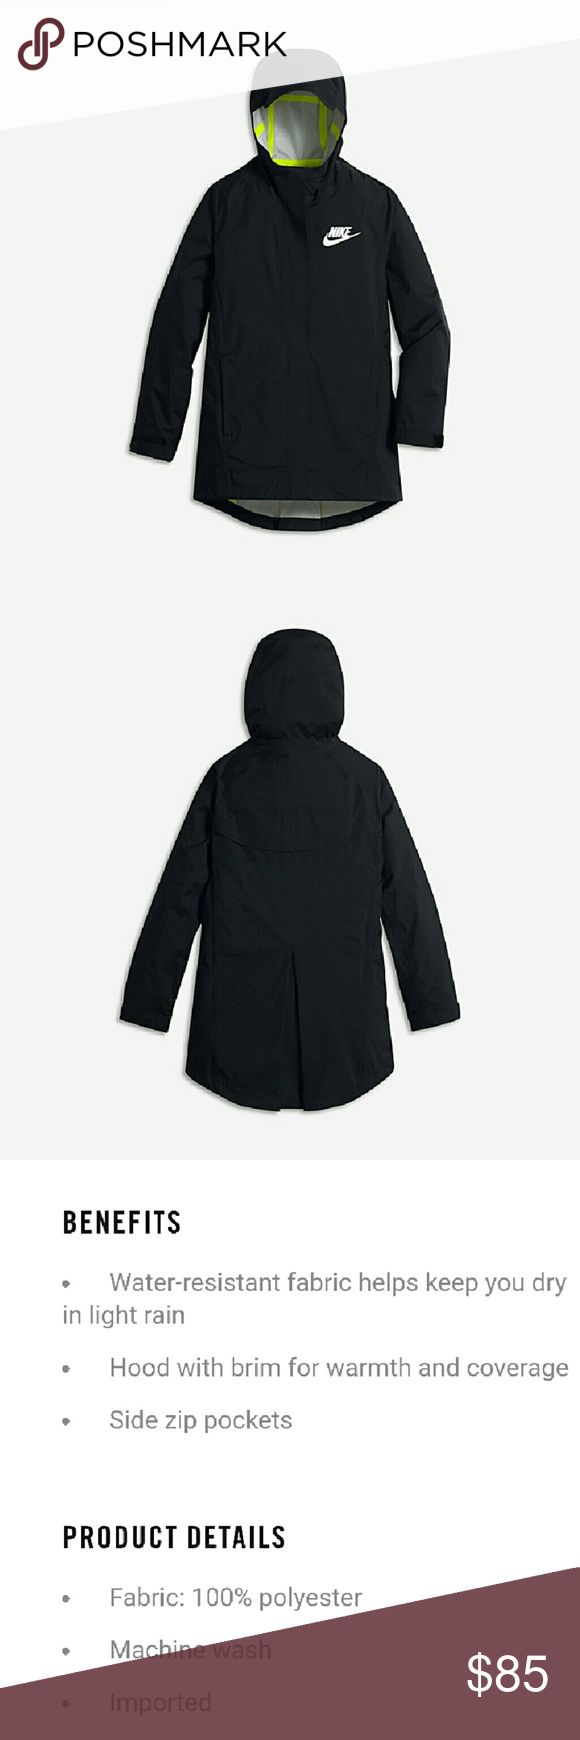 BNWT Nike Girls Big Kids Jacket This item is BNWT. Waterproof, breathable, and comes with strategically placed ports to plug in your headphones. Very lightweight. Nike Jackets & Coats Raincoats